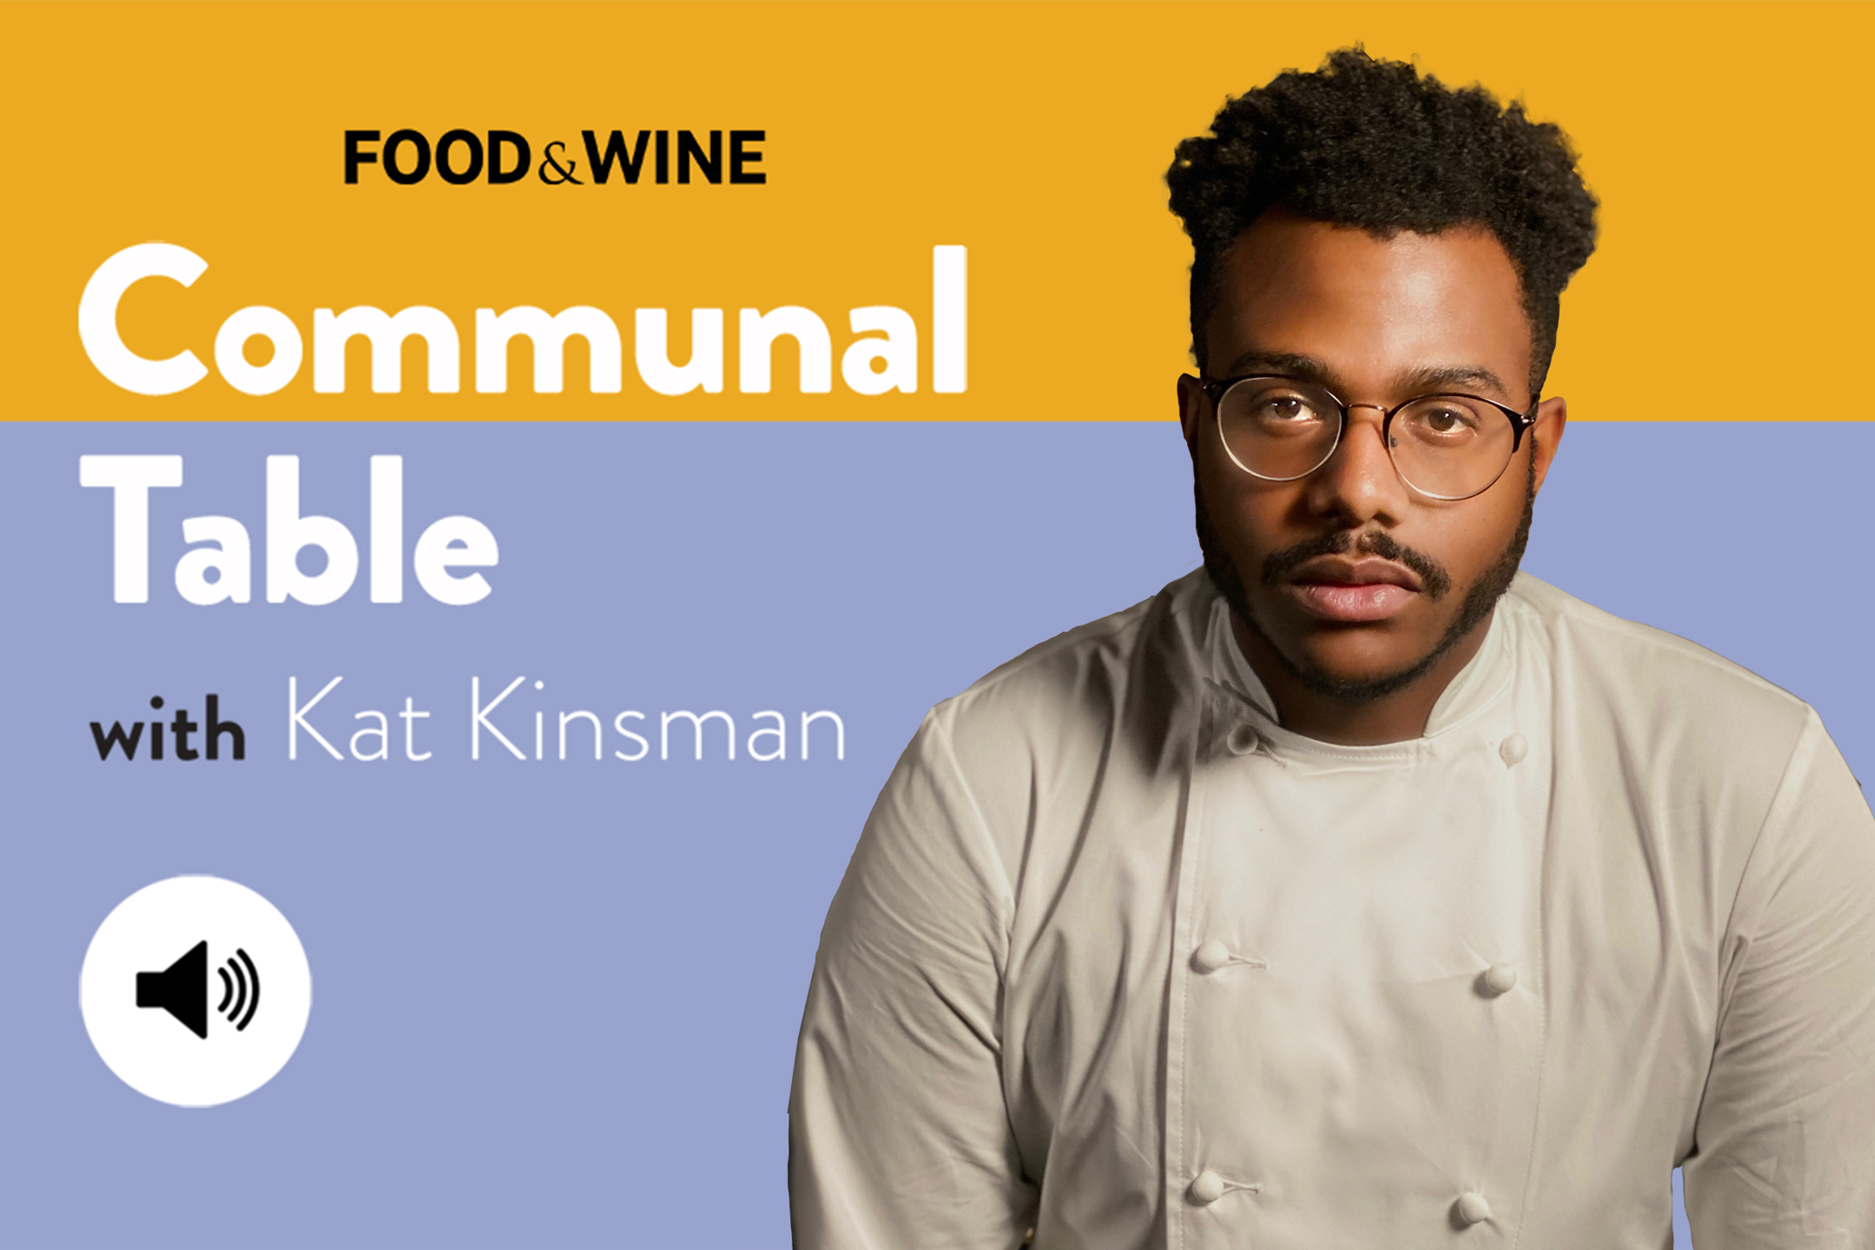 Communal Table with Kat Kinsman featuring Chef Kwame Onwuachi